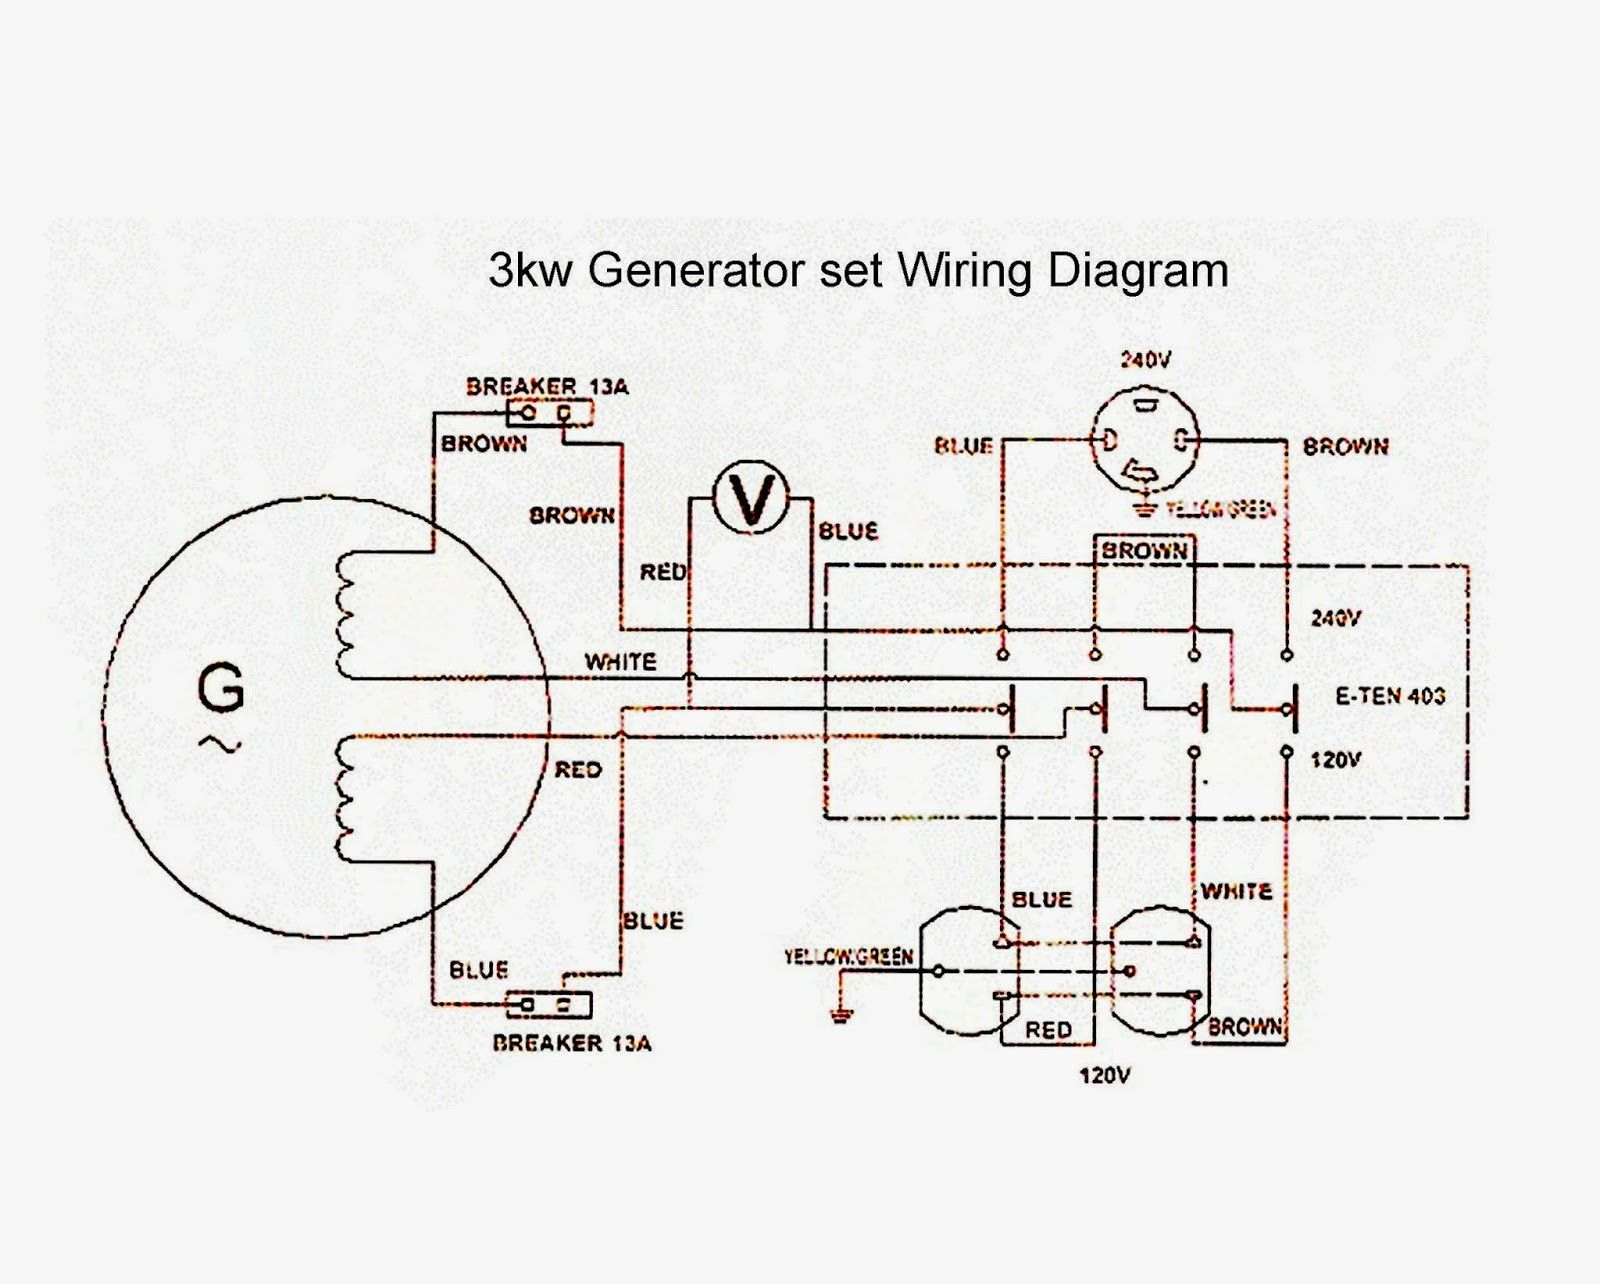 New Wiring Diagram Hitachi Starter Generator Diagram Diagramsample Diagramtemplate Wiringdiagram Diagra Circuit Diagram Diagram Electrical Circuit Diagram